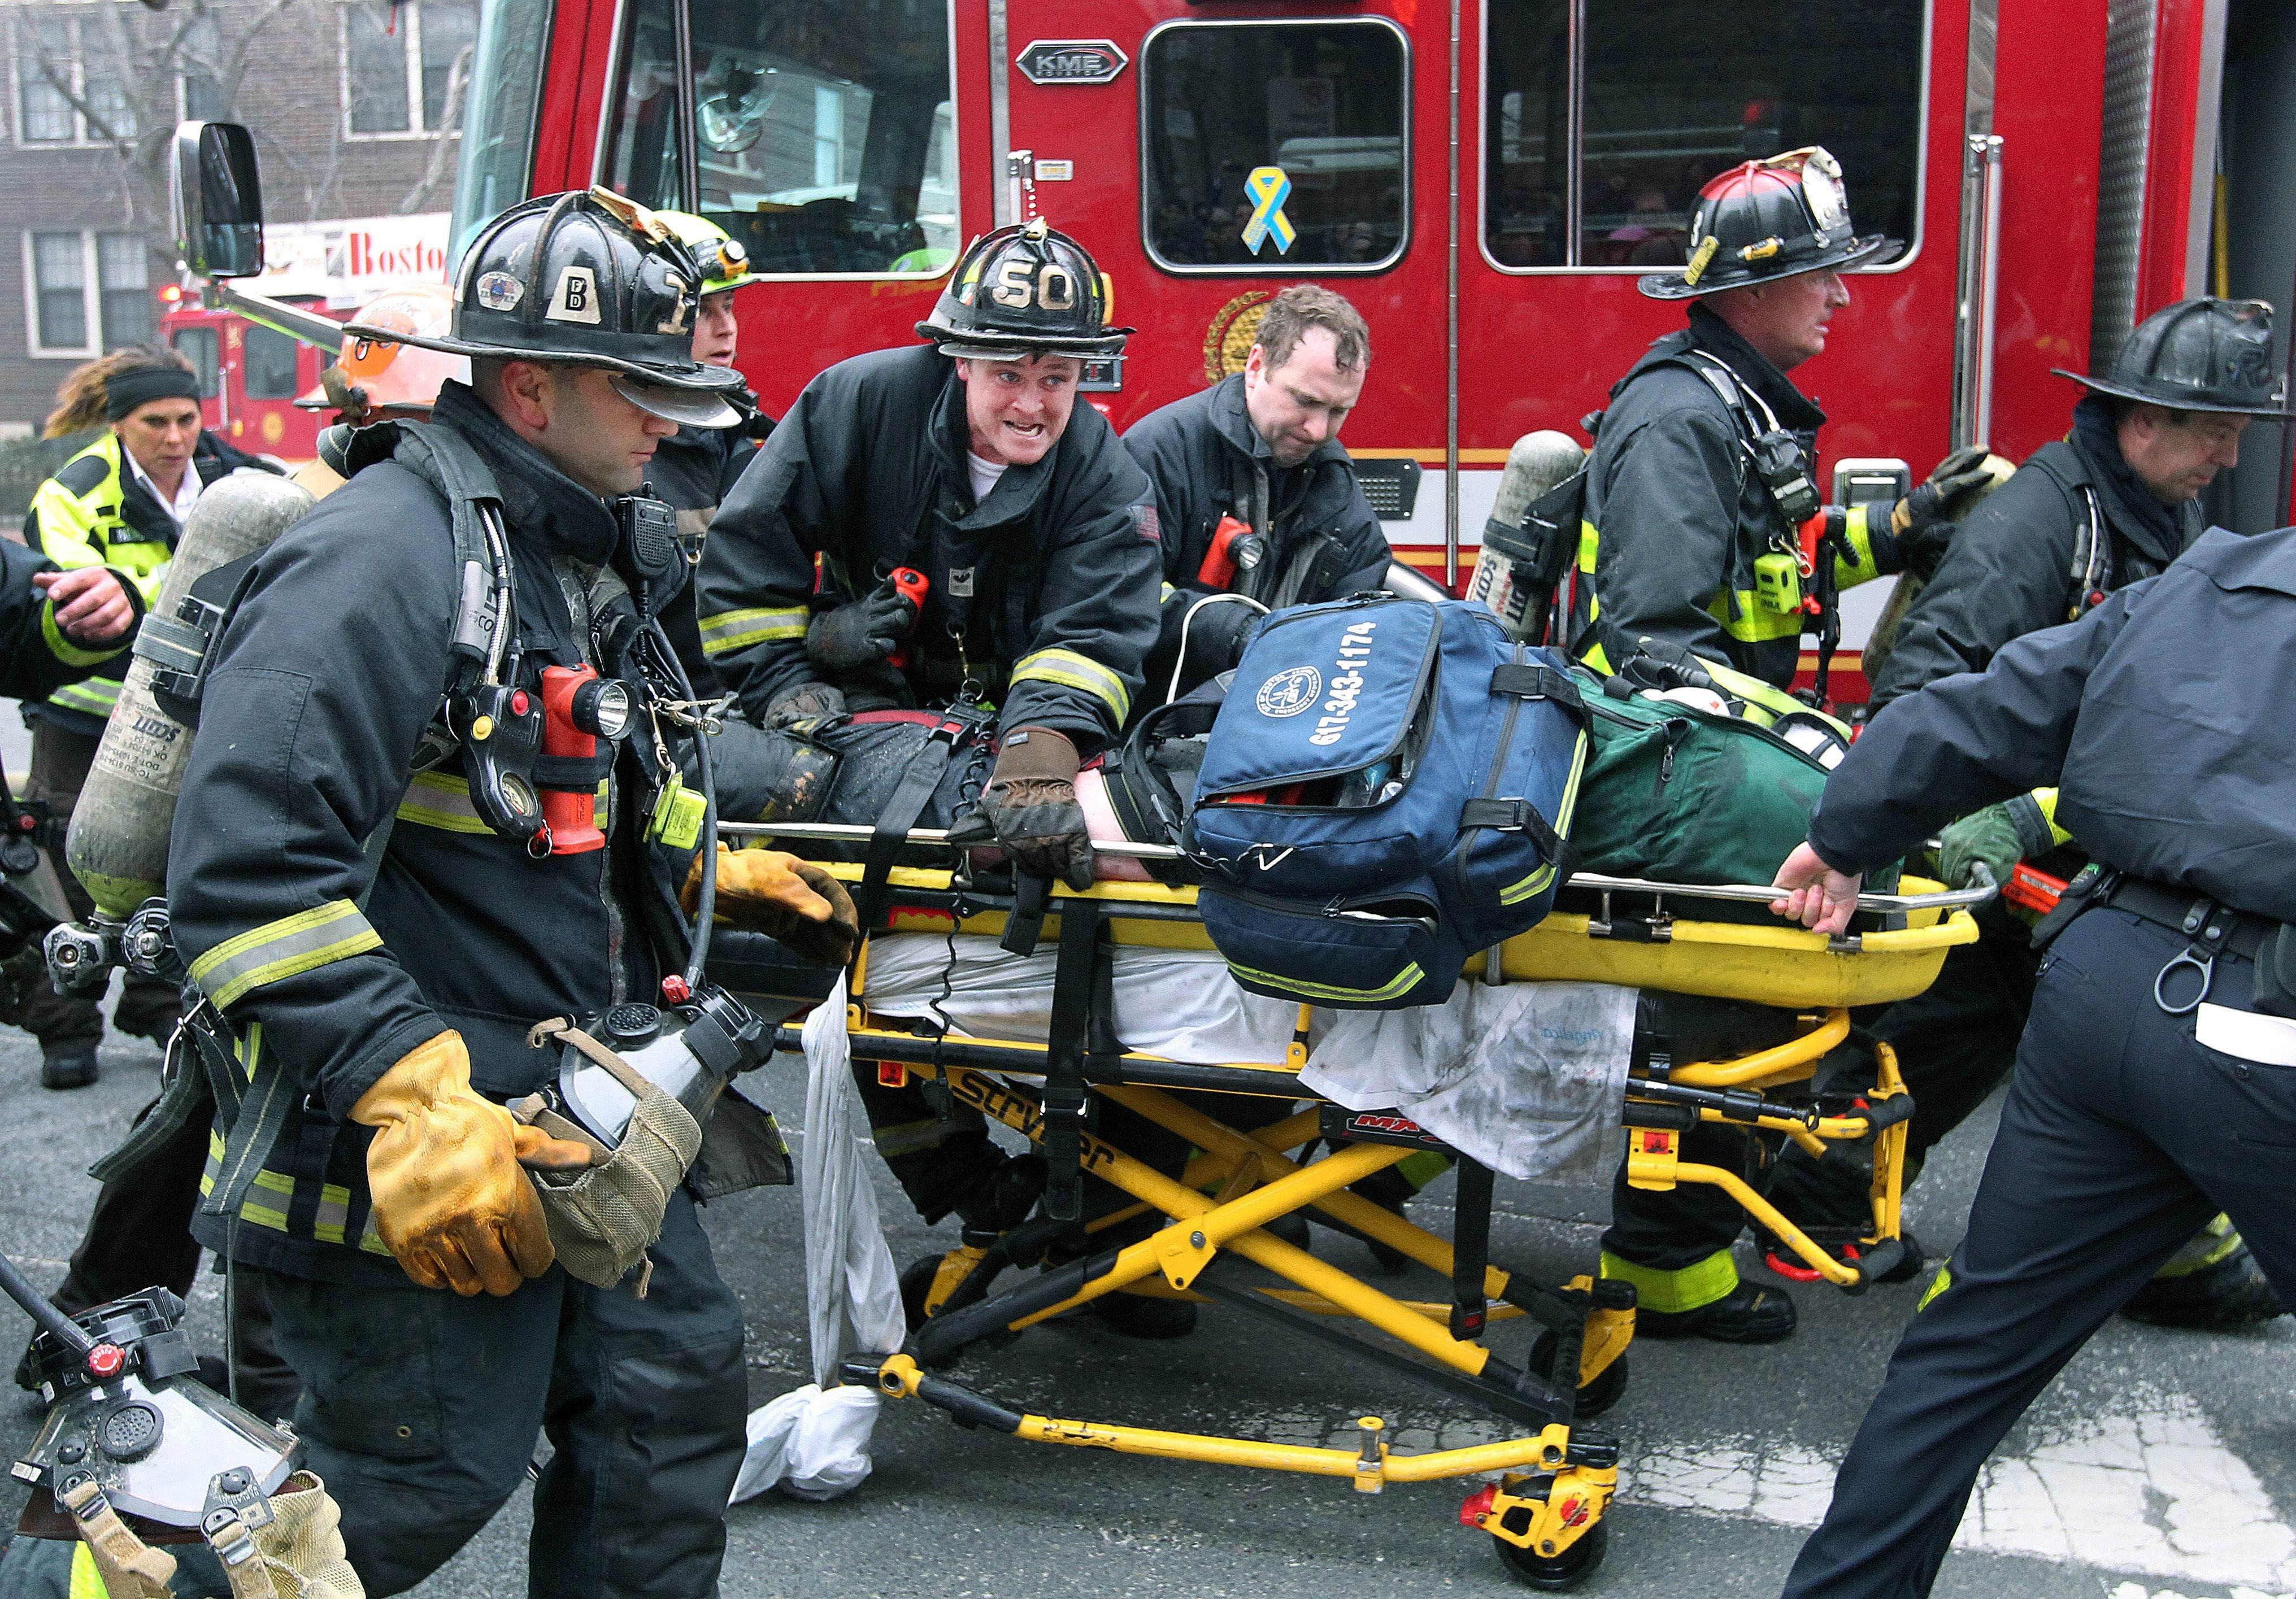 Boston Fire Department firefighters working on a fellow firefighter as he is rushed to an ambulance after being injured during a nine alarm fire in the Back Bay neighborhood of Boston, March 26, 2014.